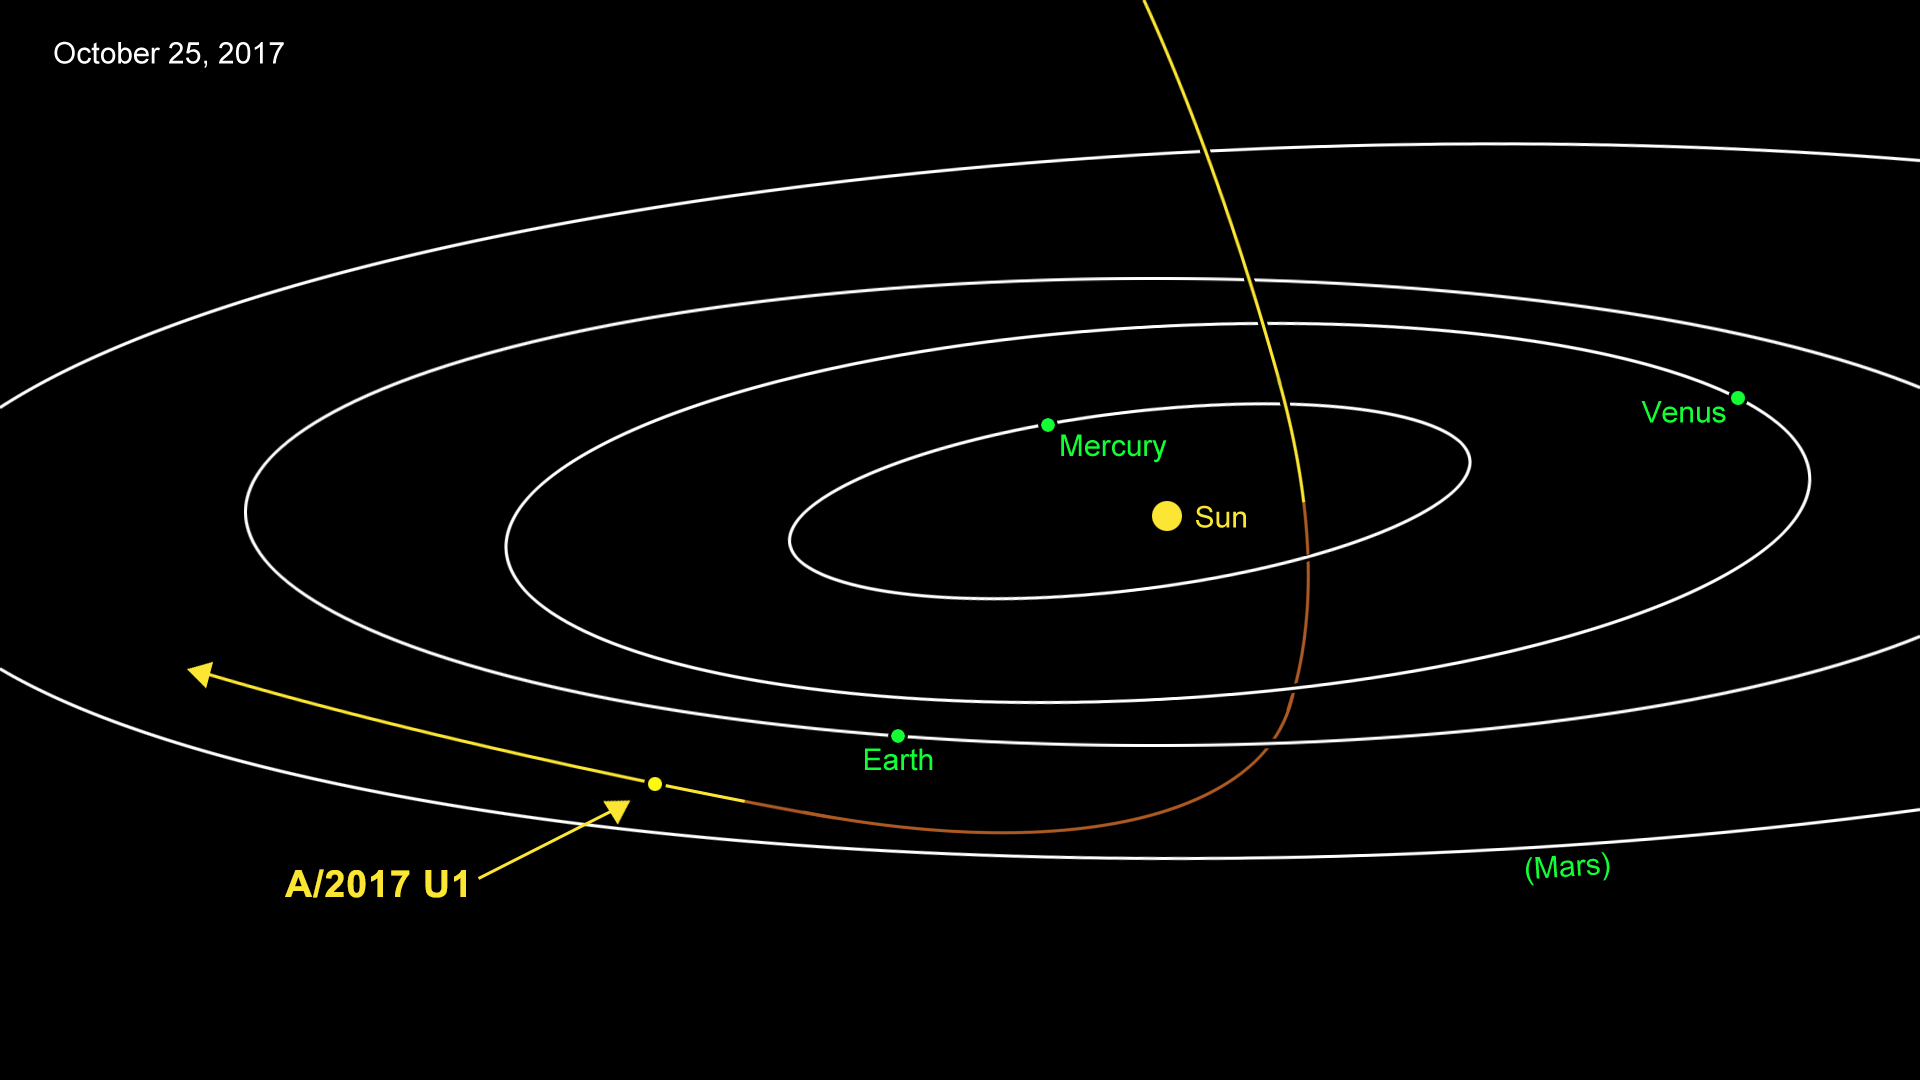 This animation shows the path of A/2017 U1, which is an asteroid — or perhaps a comet — as it passed through our inner solar system in September and October 2017. From analysis of its motion, scientists calculate that it probably originated from outside of our solar system. Image credit: NASA/JPL-Caltech